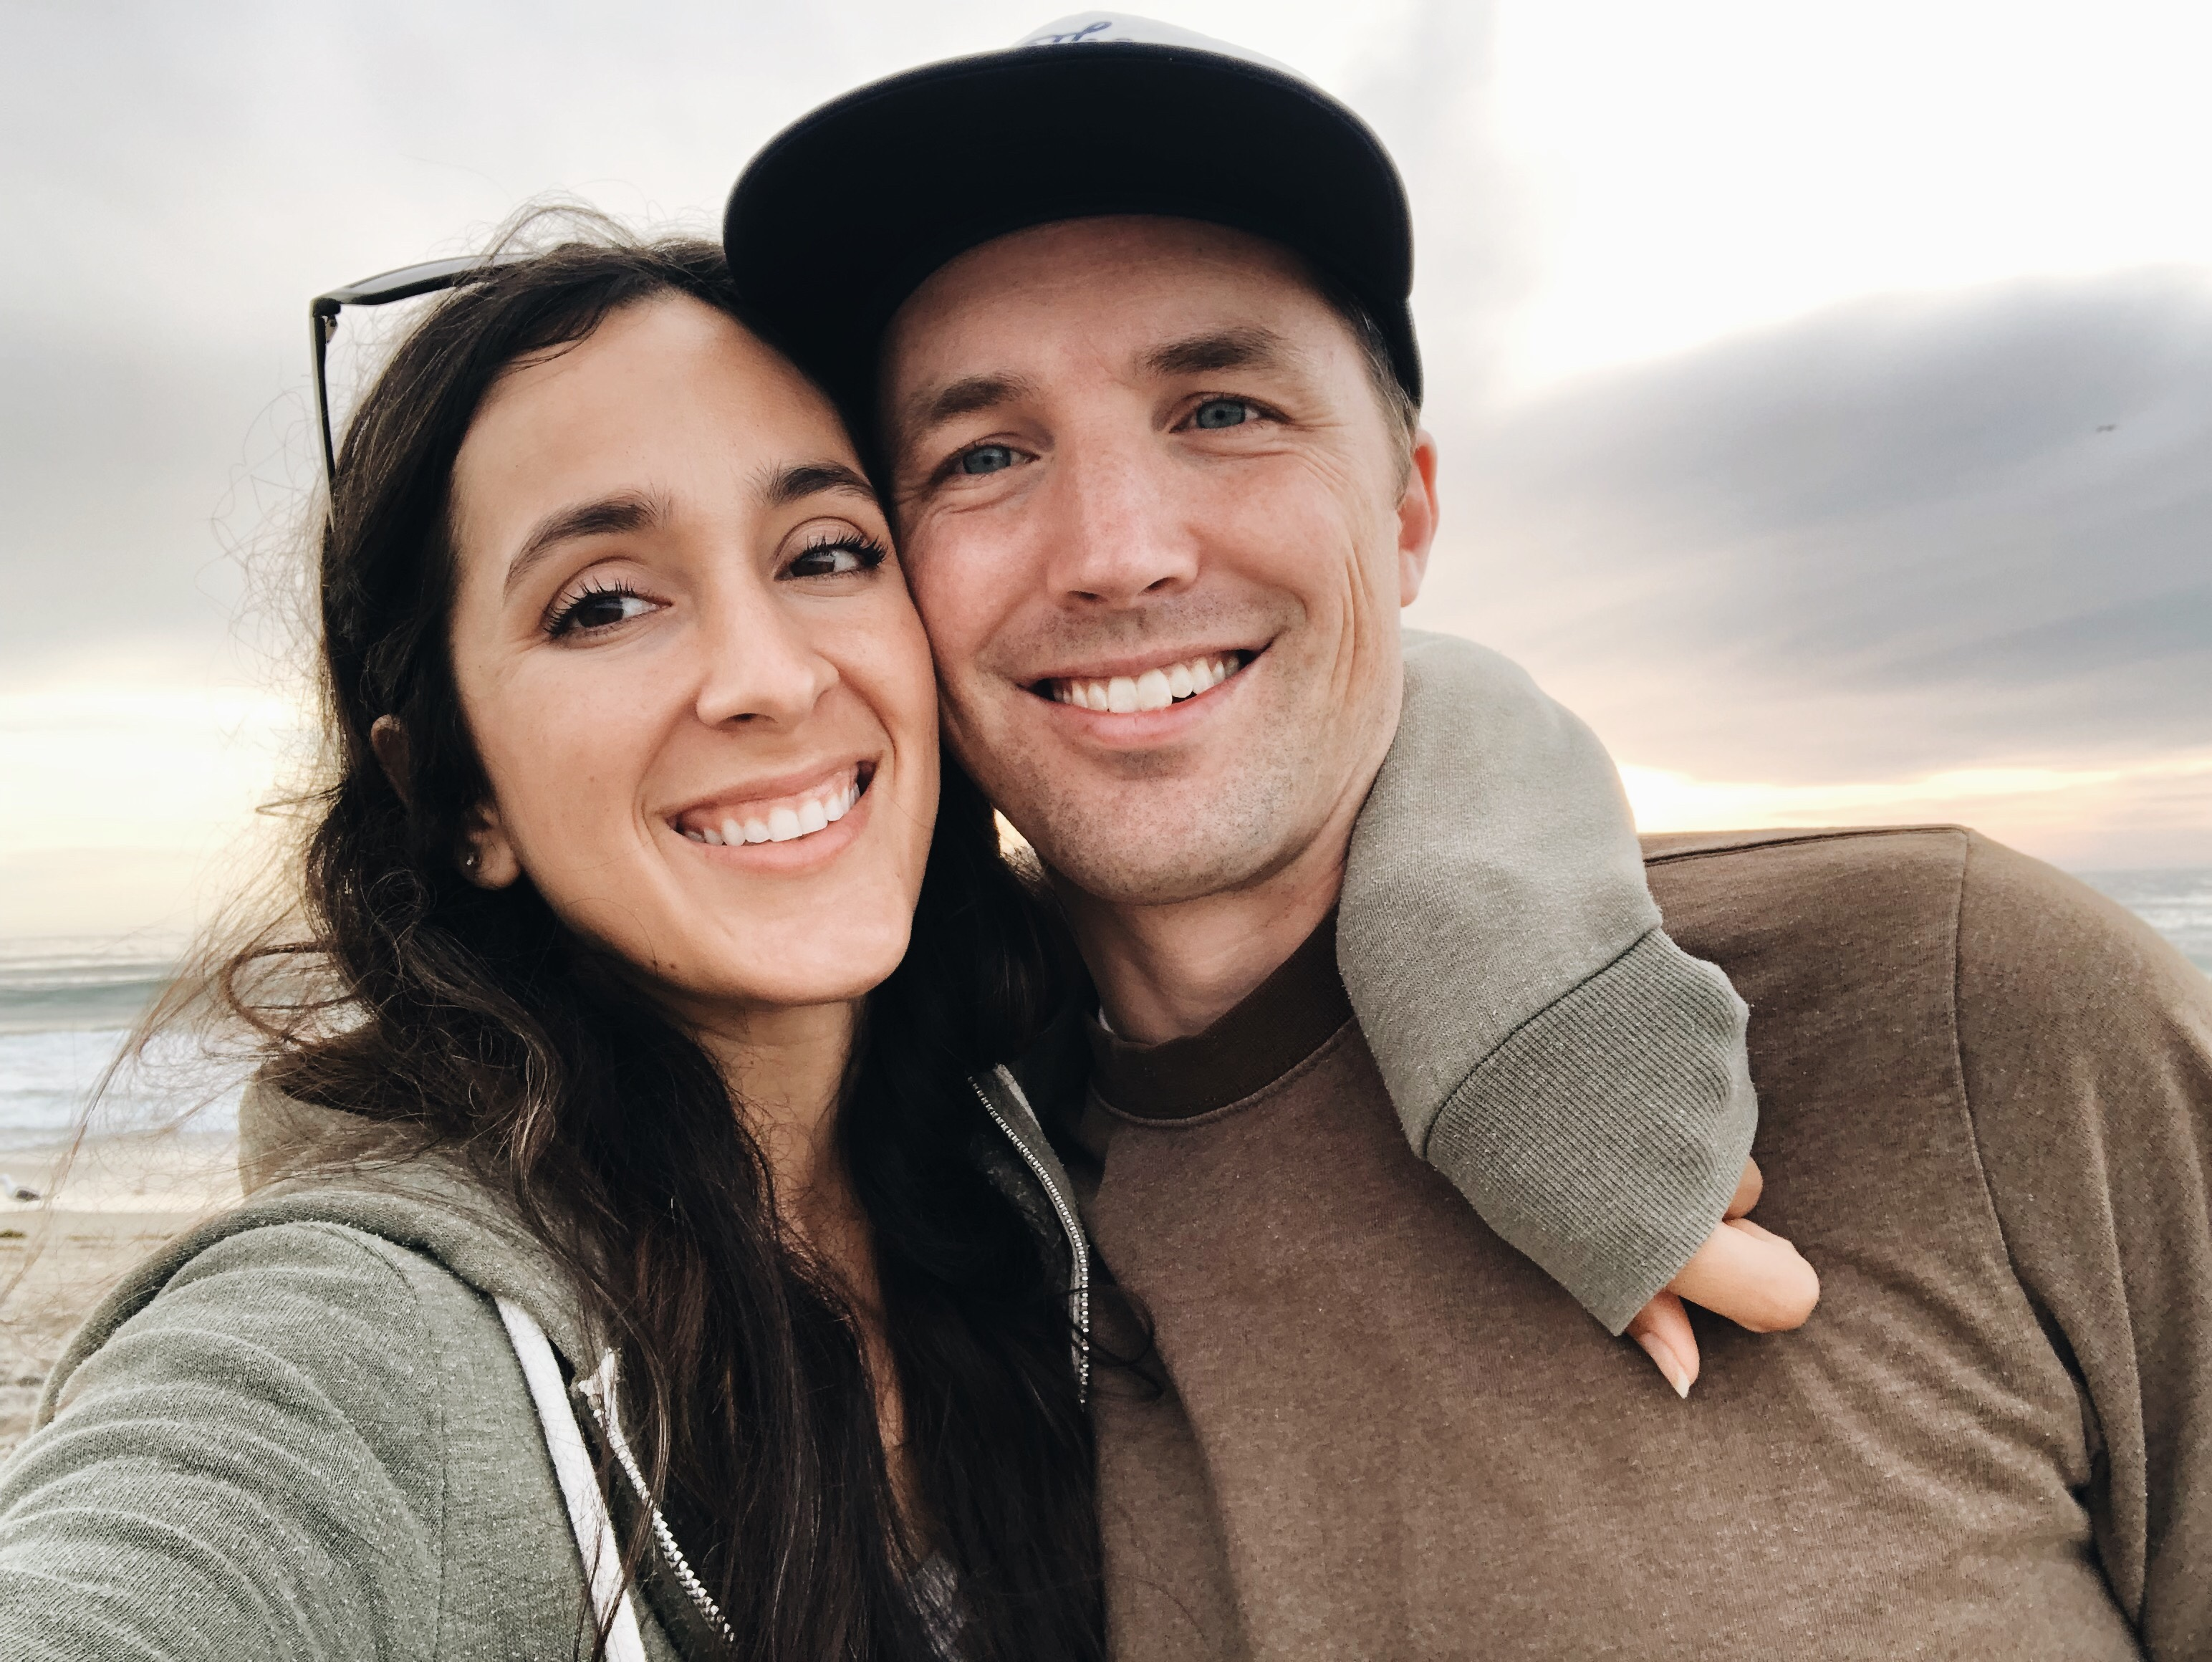 A husband and wife smiling, looking cute and happy.